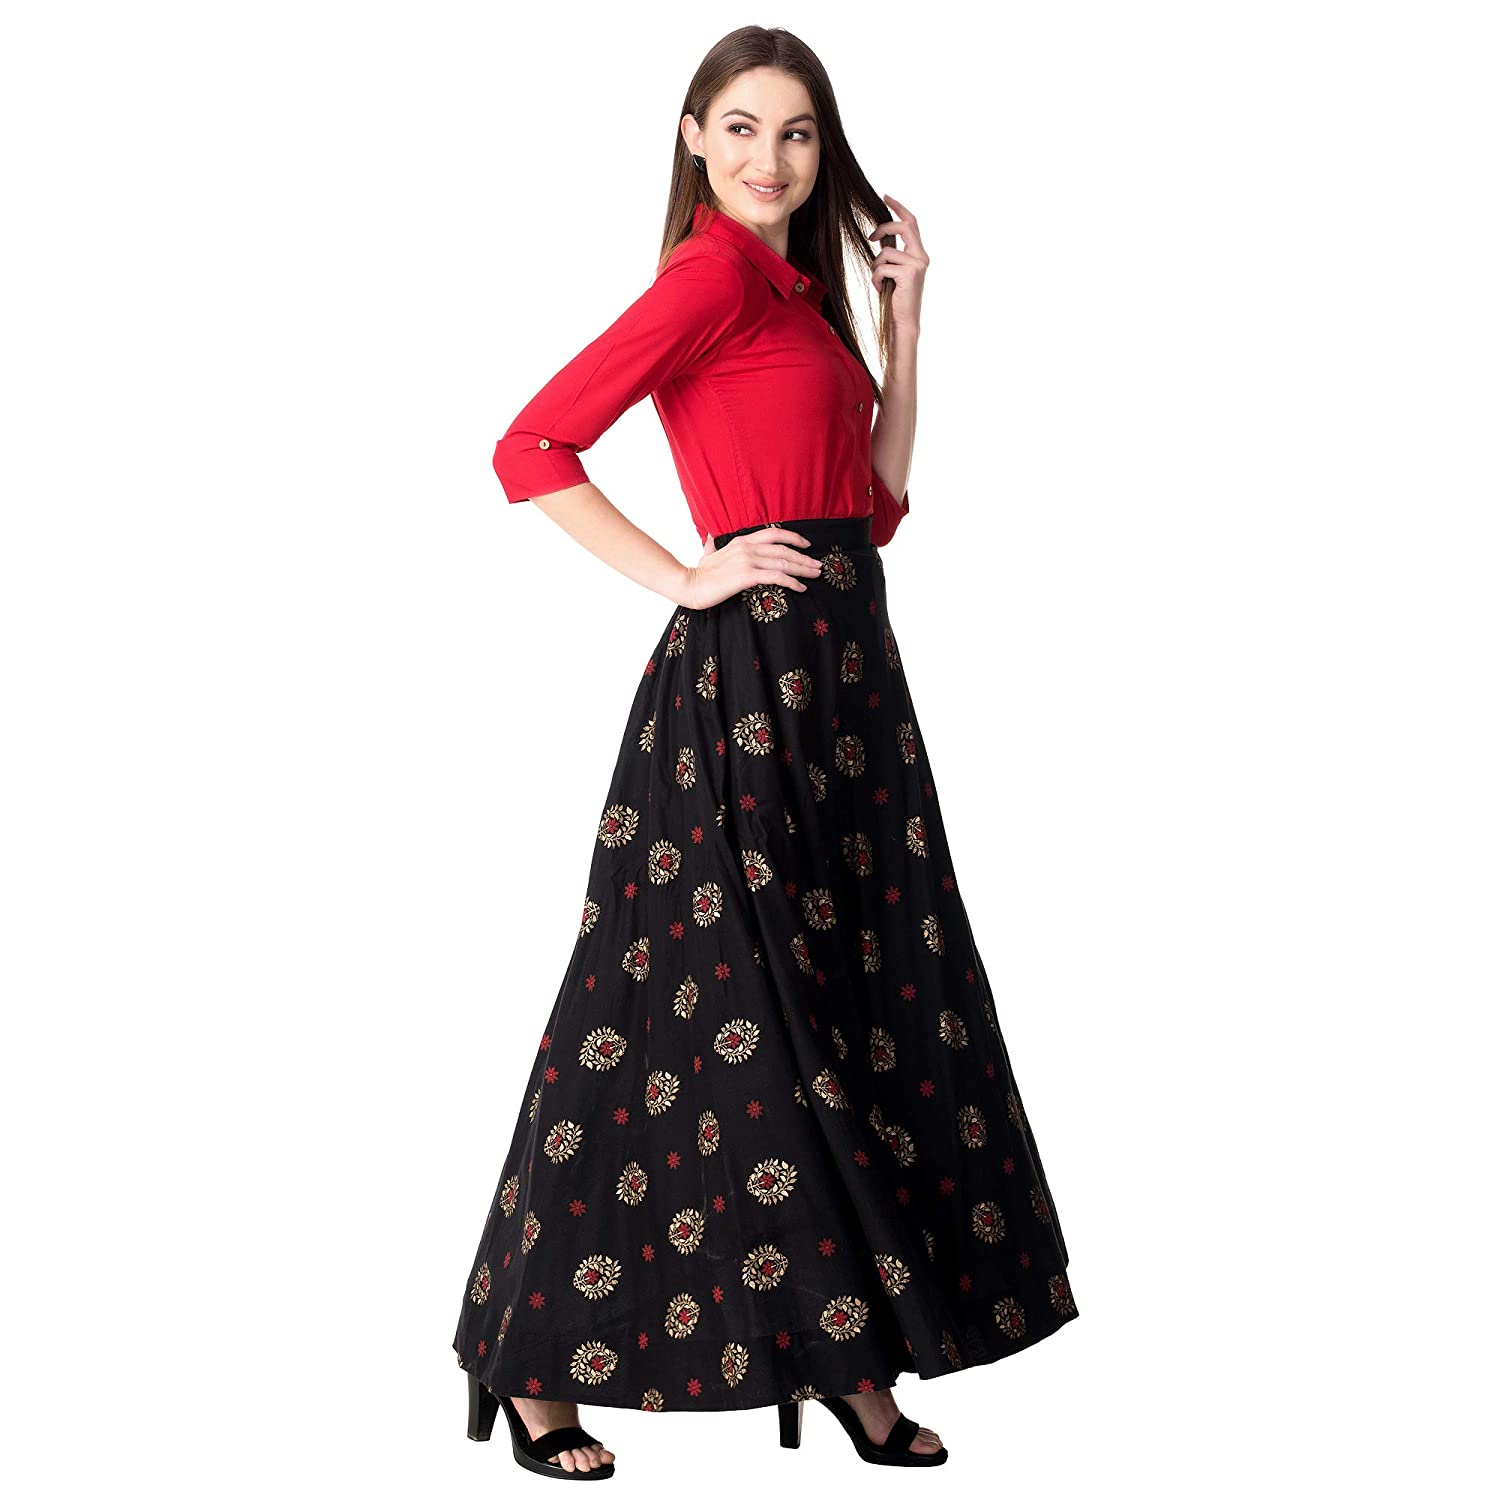 15d02a94931dc7 Khushal K Women s Rayon Top With Long Skirt Set  Amazon.in  Clothing    Accessories